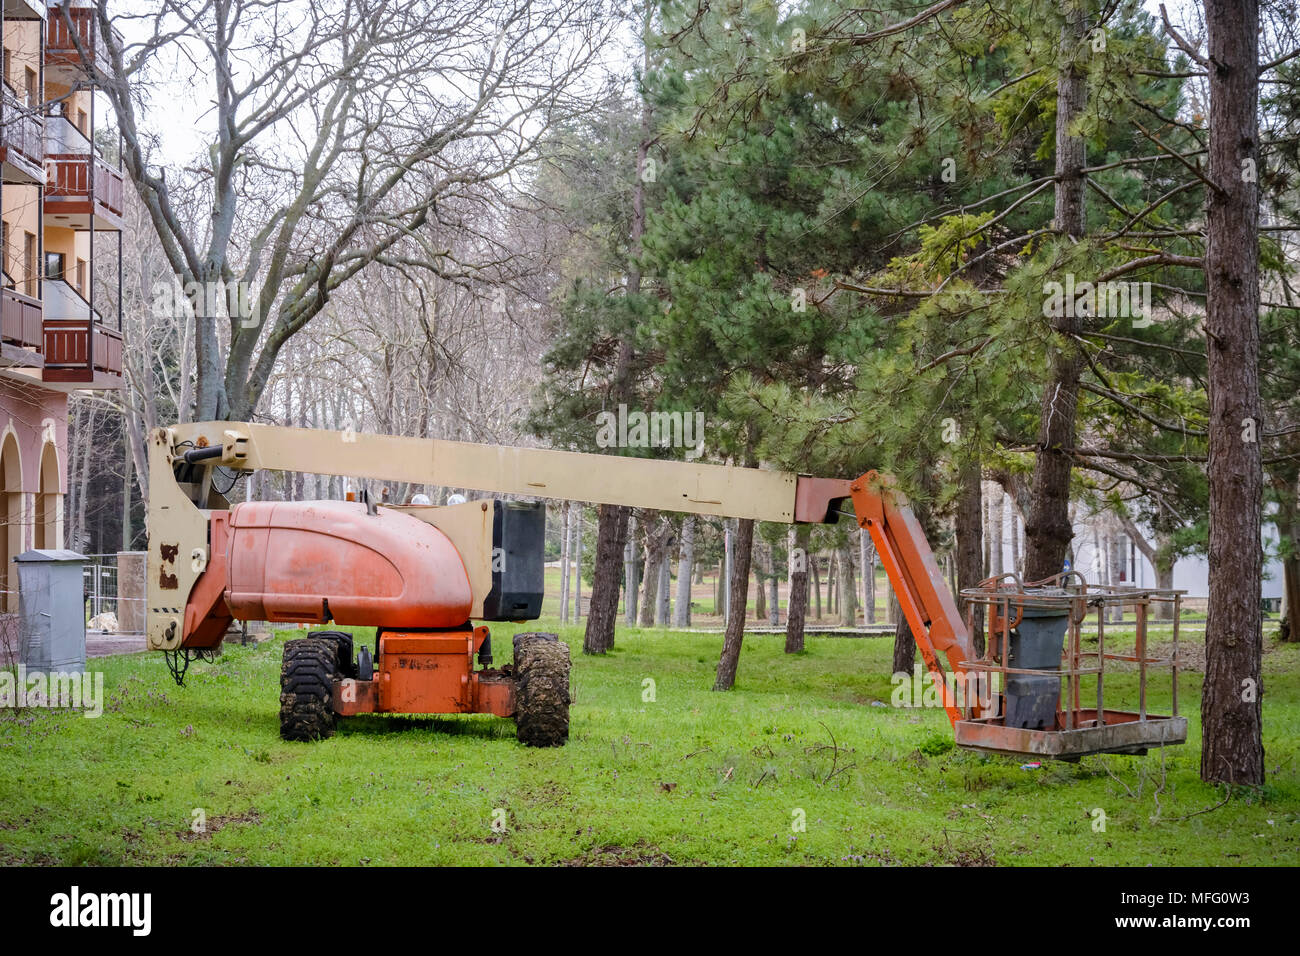 Articulated Boom Lift in the grass in a park - Stock Image